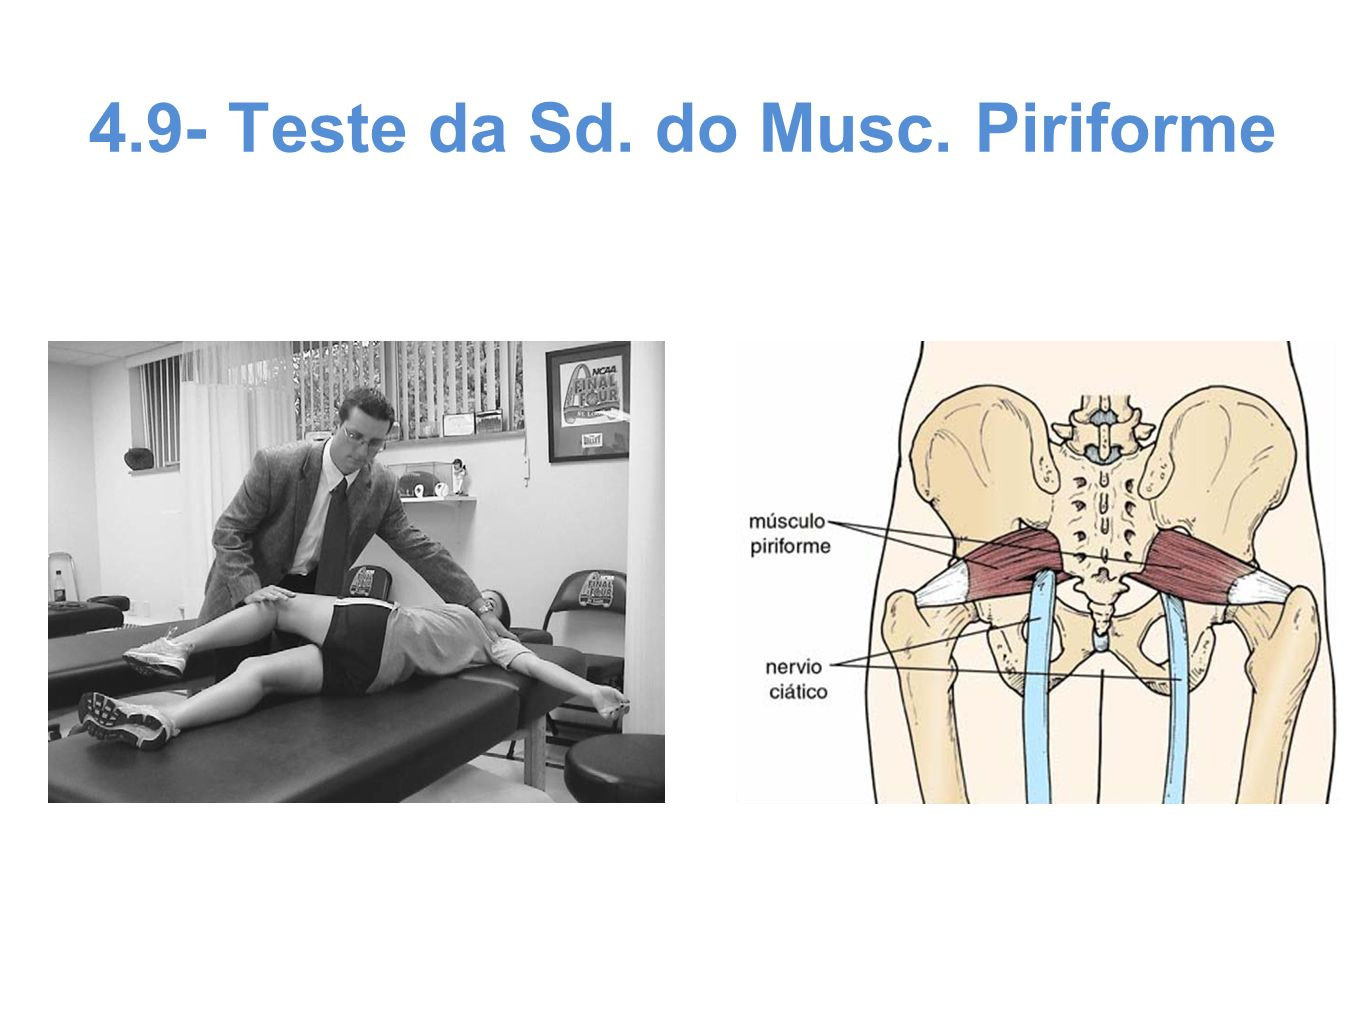 4.9- Teste da Sd. do Musc. Piriforme